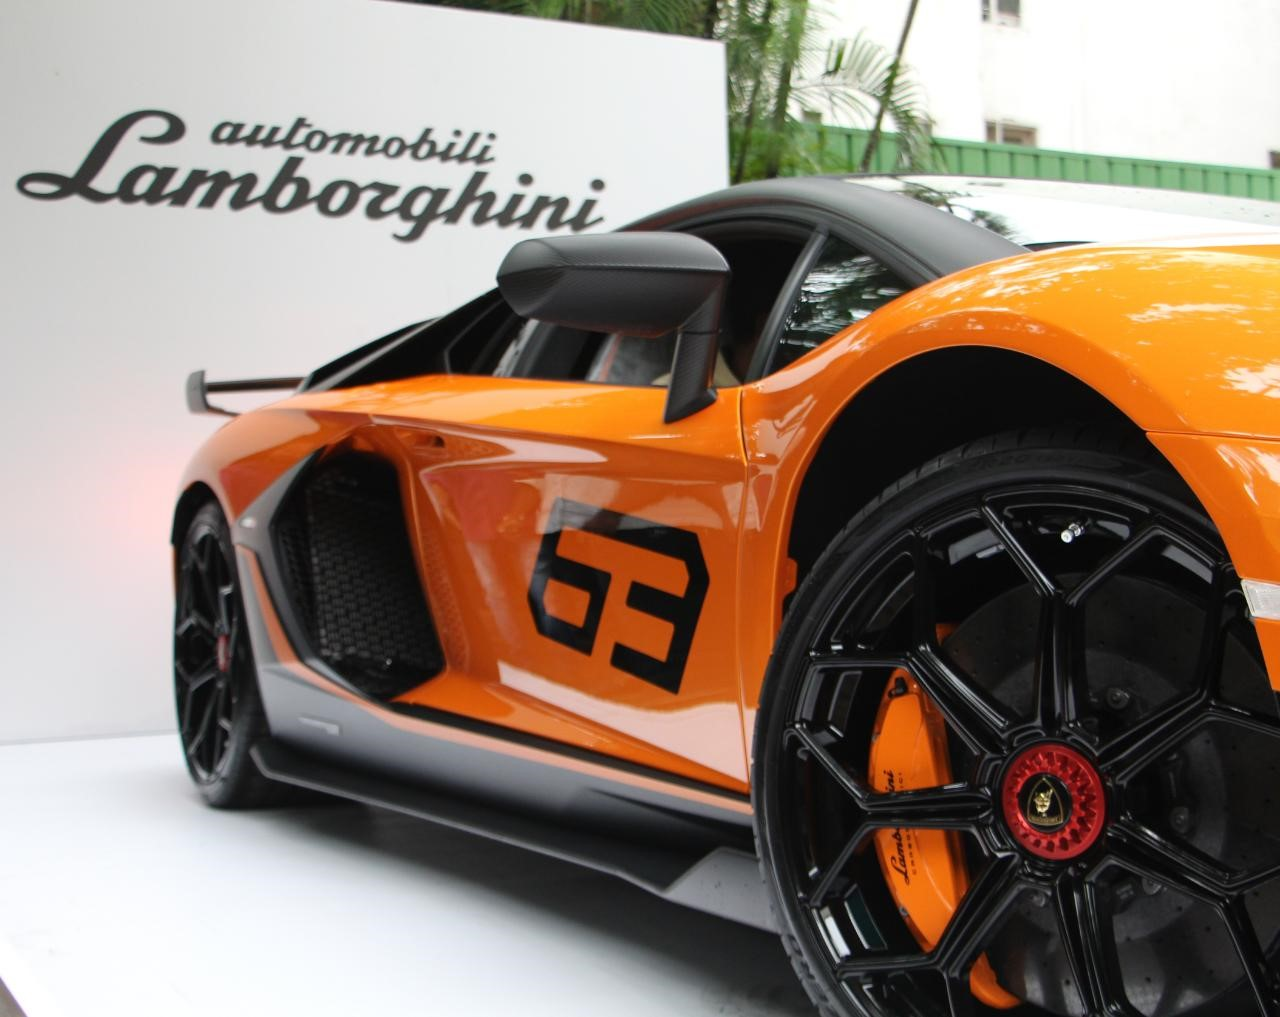 Driving modes include the Strada, Sport, and Corsa, along with a customizable EGO option that helps the driver adjust parameters as per his choice. The interior features a TFT digital dashboard display with Kombi graphics. This shows the live status of the car's Aerodinamica Lamborghini Attiva 2.0 (ALA) functions. (Image source: Lamborghini India)